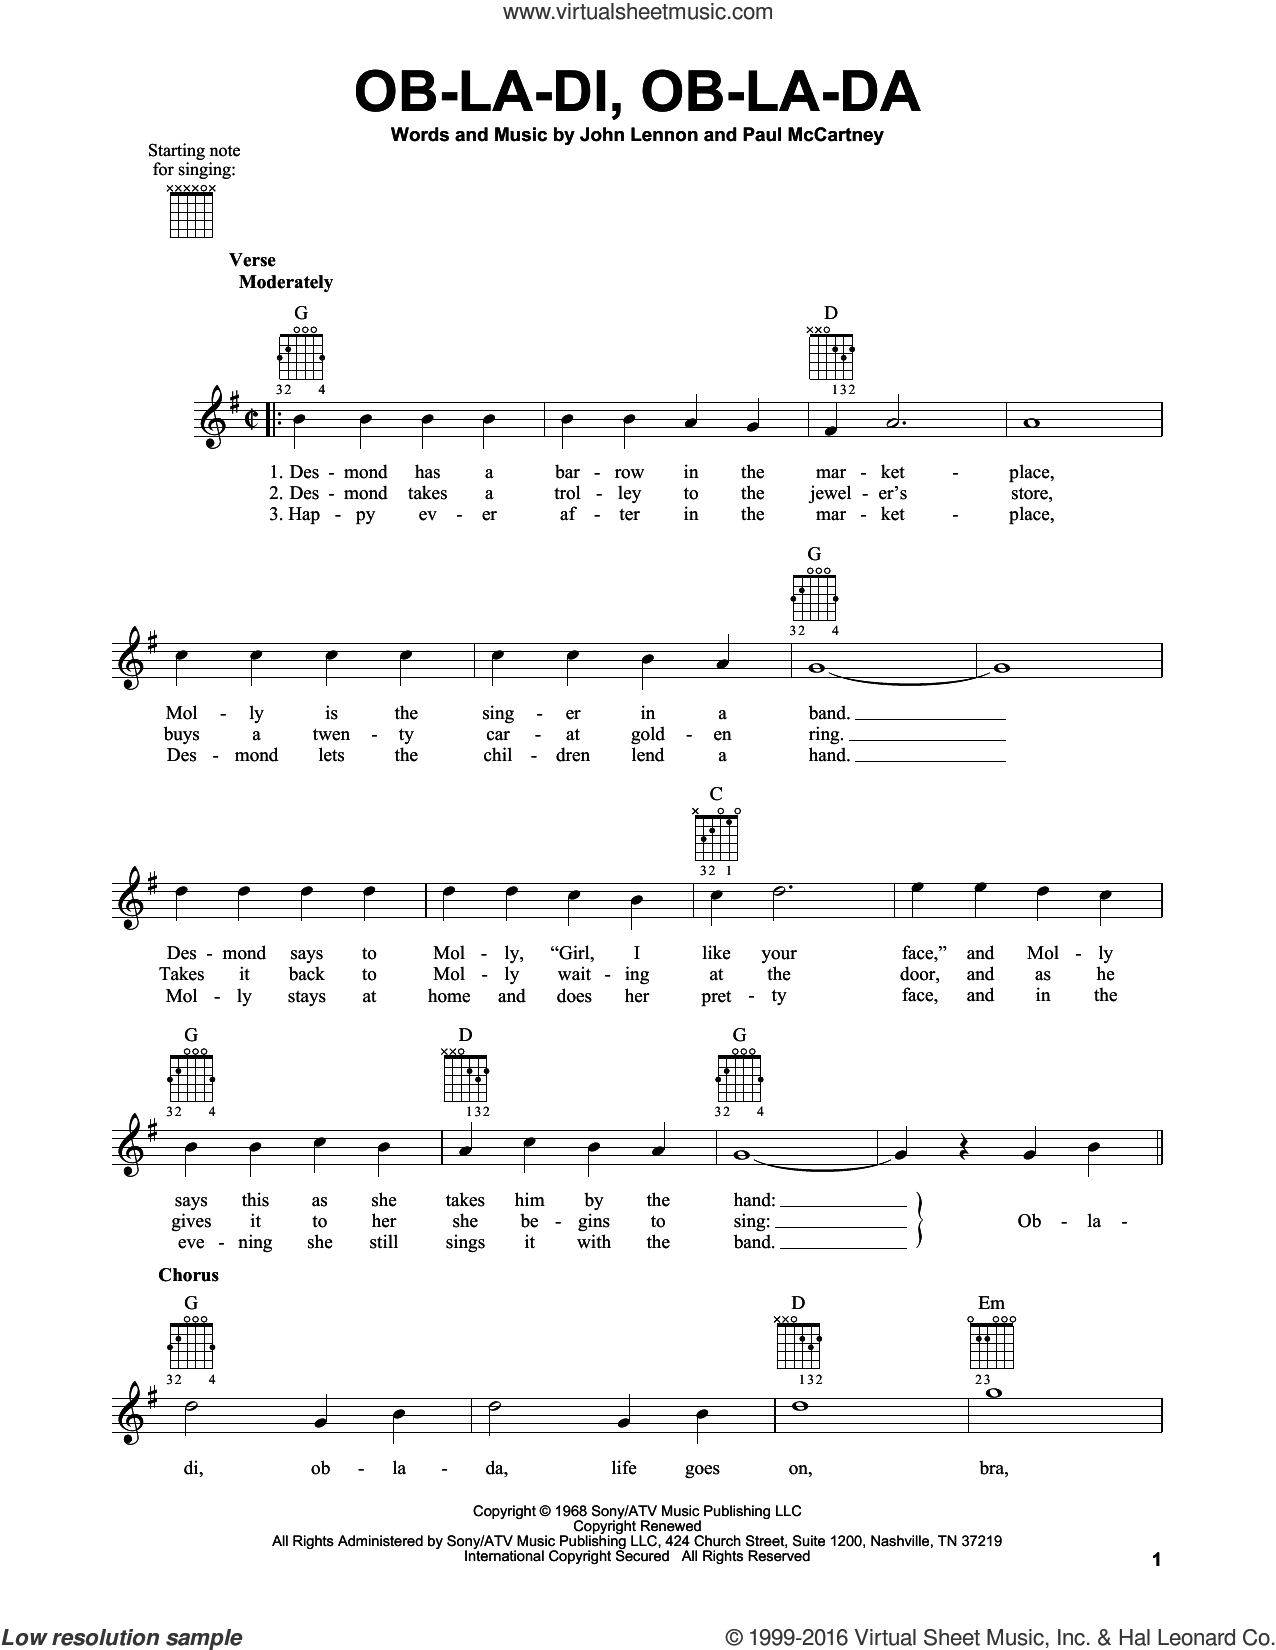 Ob-La-Di, Ob-La-Da sheet music for guitar solo (chords) by The Beatles, John Lennon and Paul McCartney, easy guitar (chords). Score Image Preview.